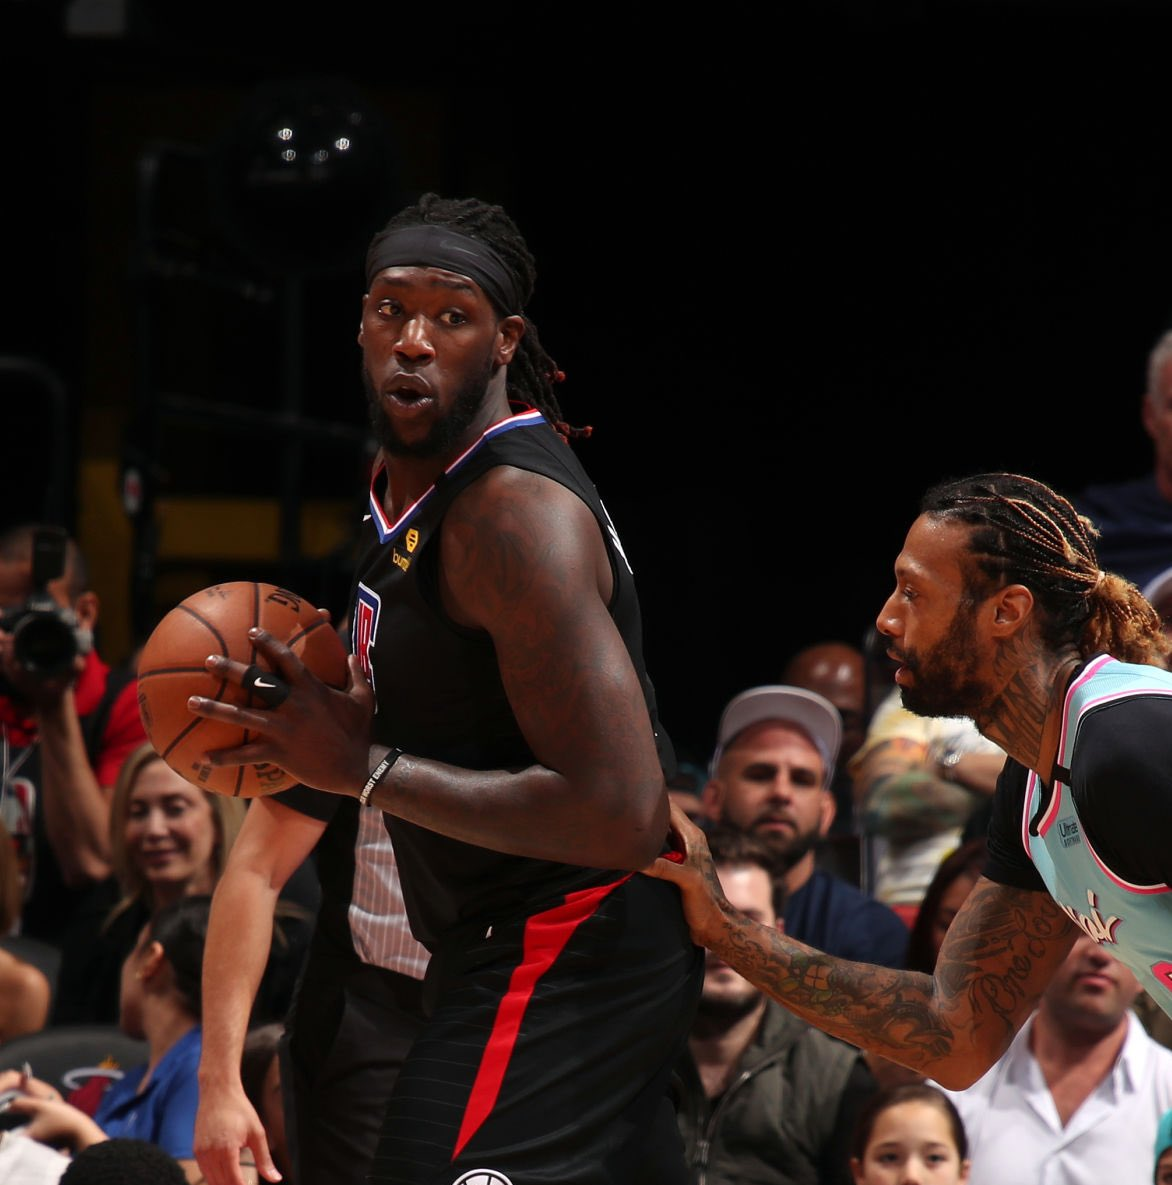 """One Eastern Conference executive suggested the Miami Heat as a possible destination for Montrezl Harrell  """"They will leave space for Giannis, but they could give [Harrell] a big one-year deal. They always figure it out.""""  (Via Eric Pincus of Bleacher Report) https://t.co/oN2cJj8oRi"""